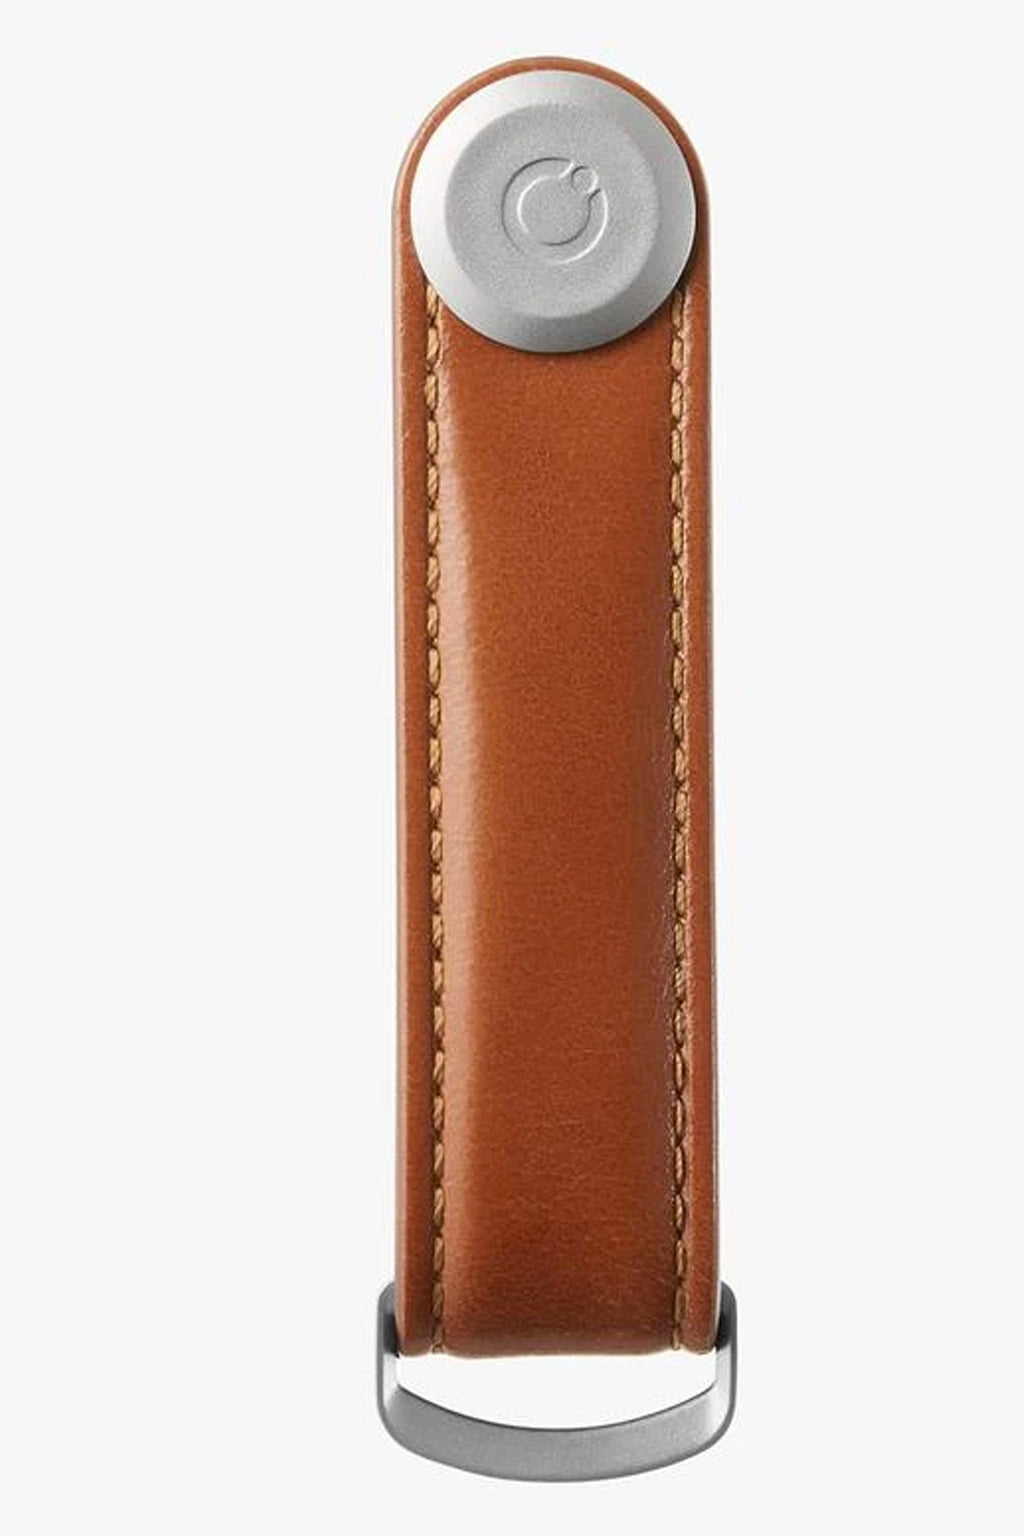 Orbitkey Cognac Key Organiser - The Mercantile London